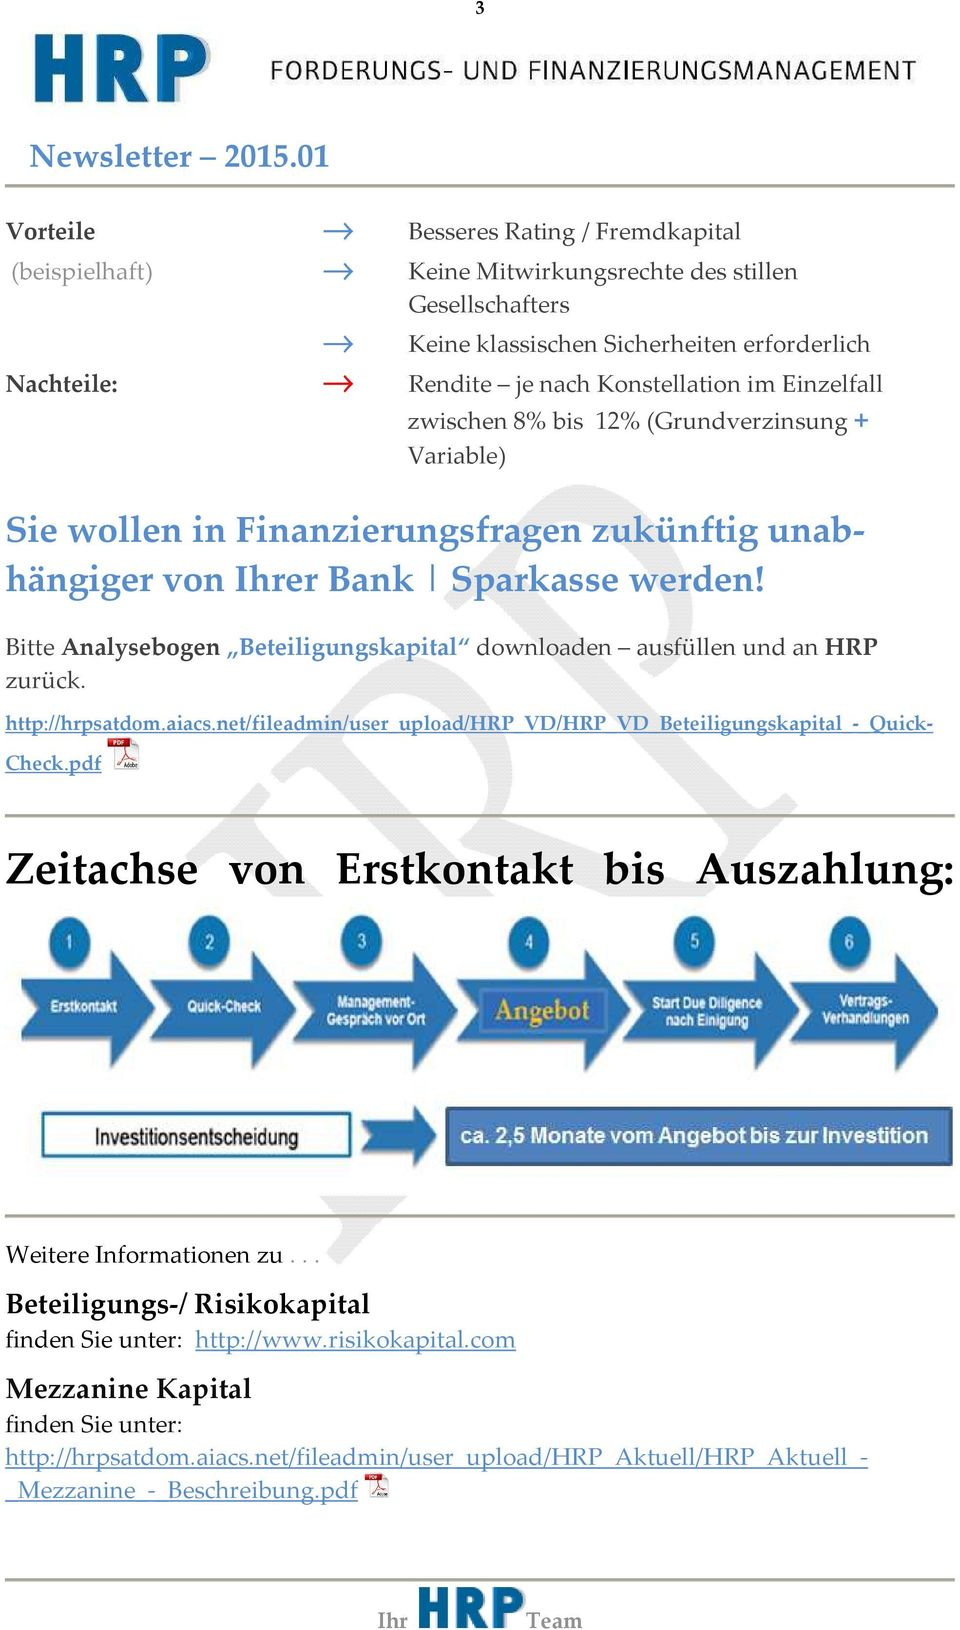 Bitte Analysebogen Beteiligungskapital downloaden ausfüllen und an HRP zurück. http://hrpsatdom.aiacs.net/fileadmin/user_upload/hrp_vd/hrp_vd_beteiligungskapital_-_quick- Check.